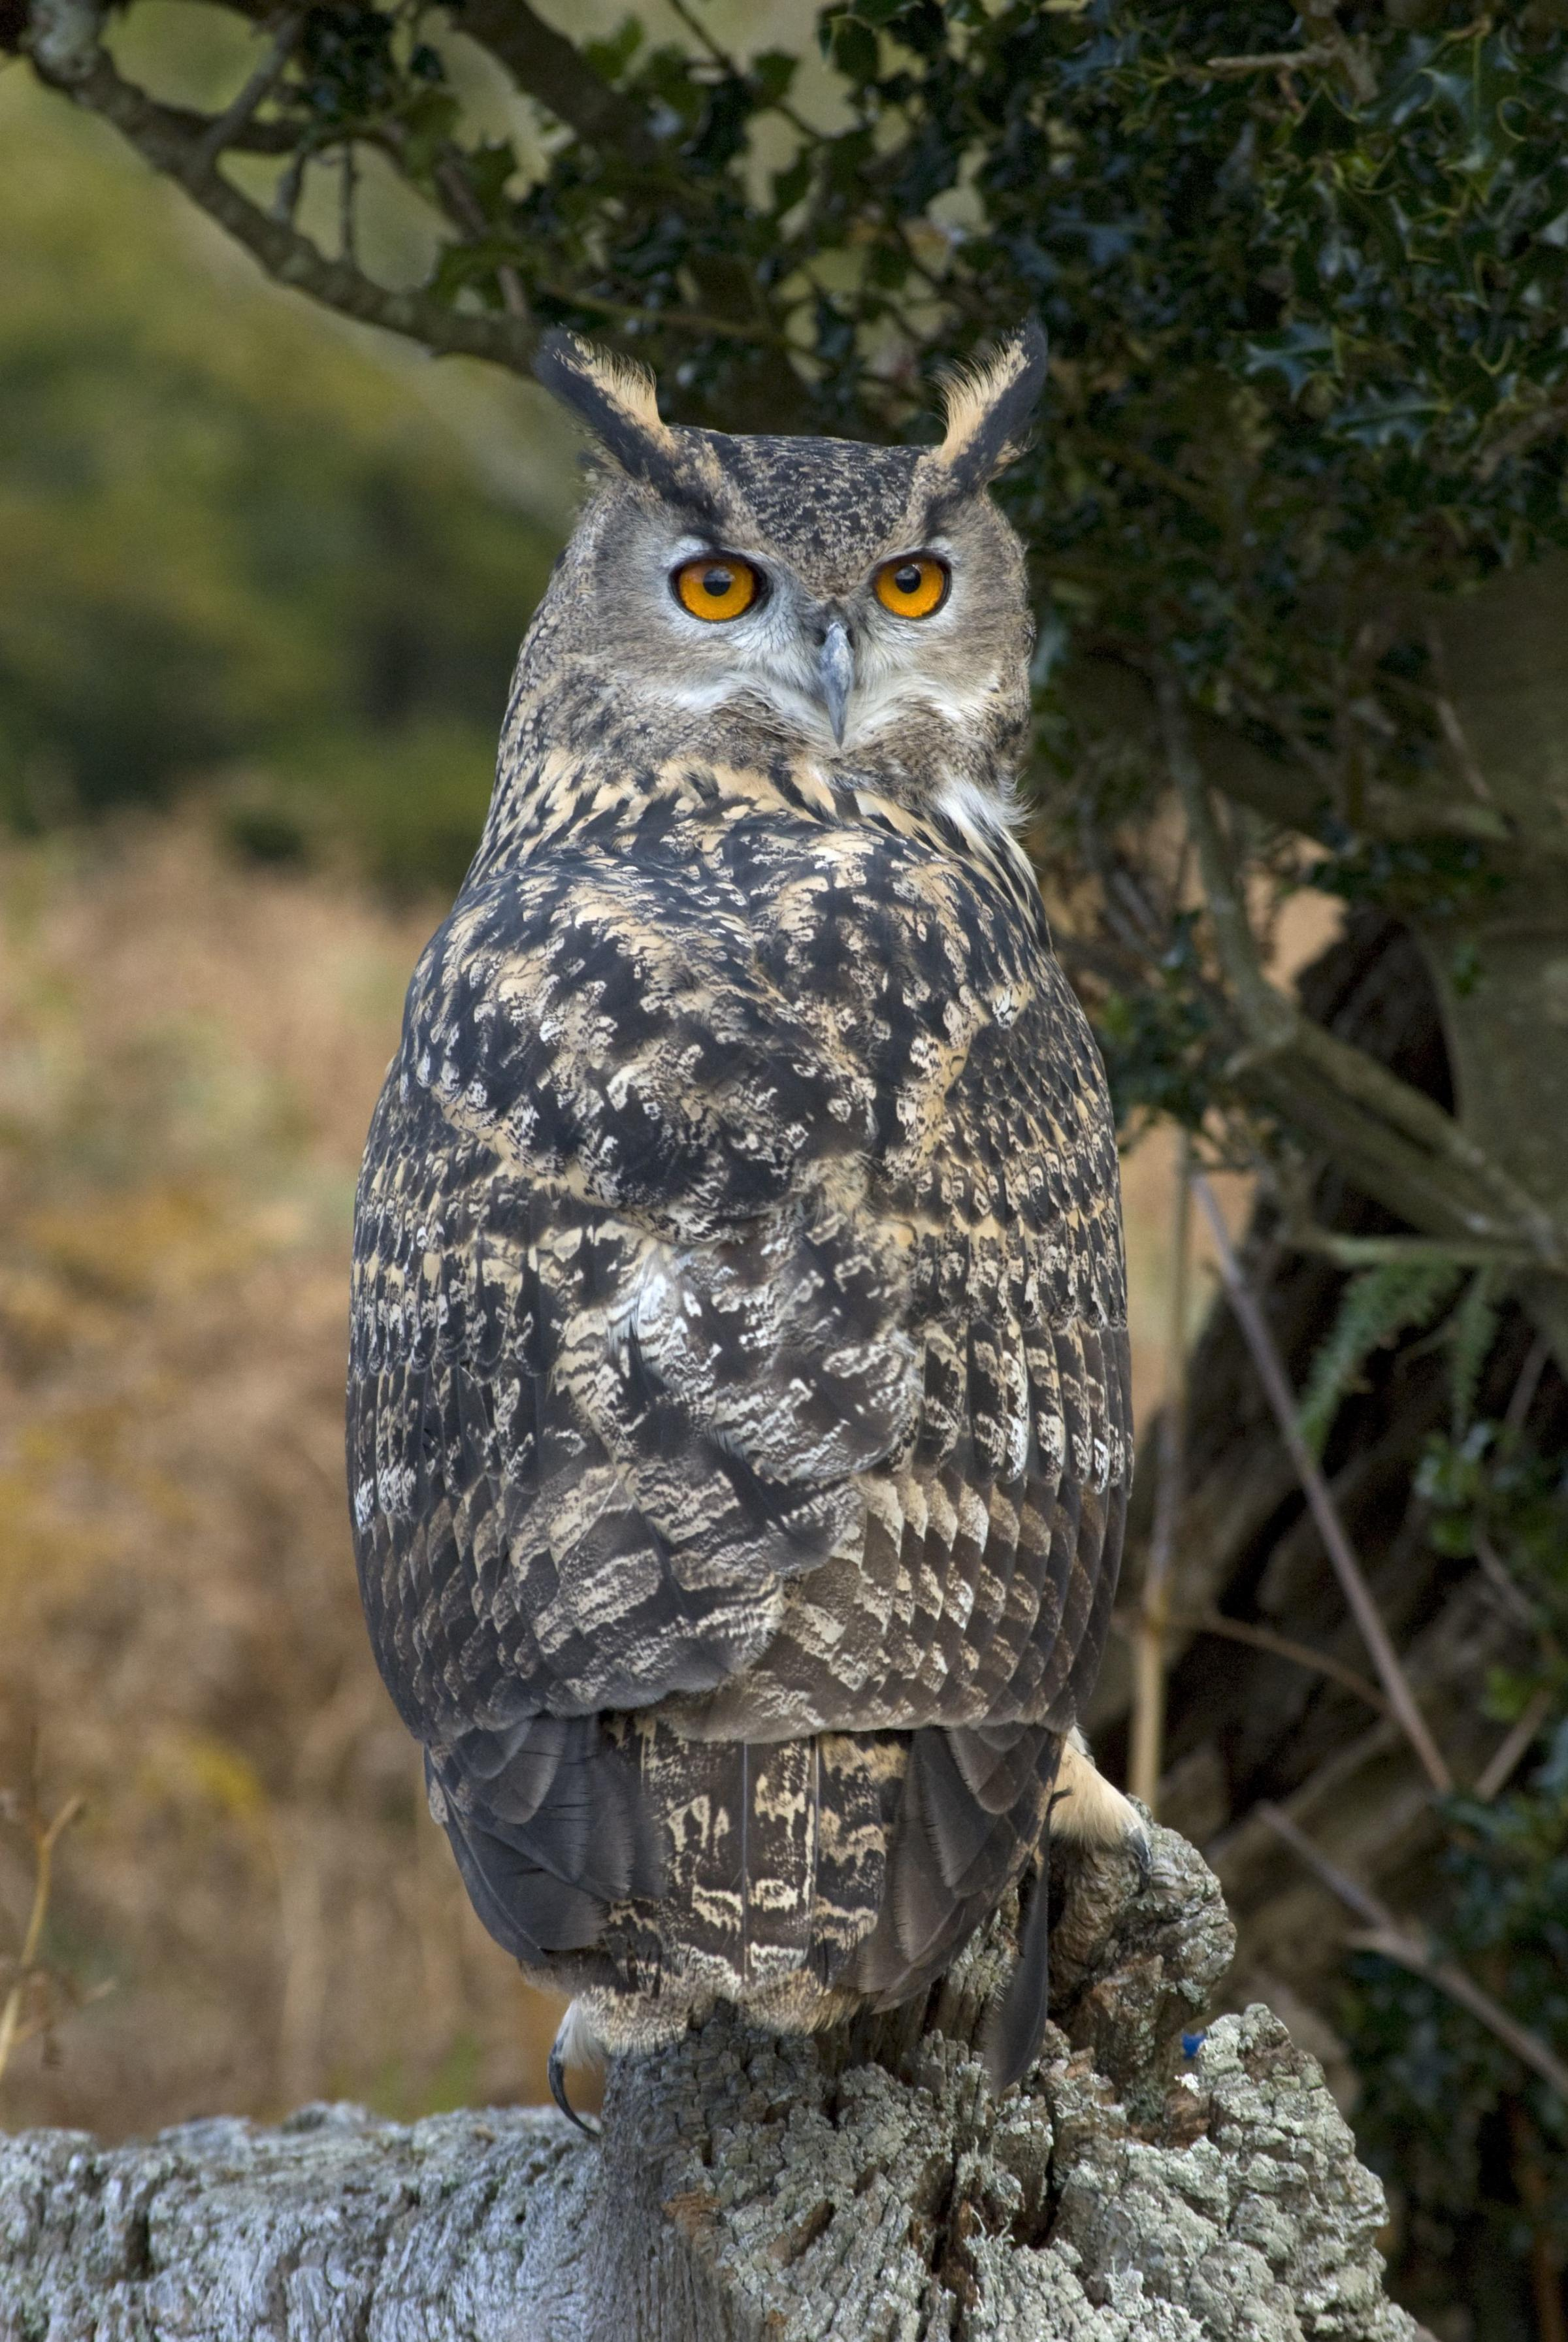 Brexit the European Eagle Owl